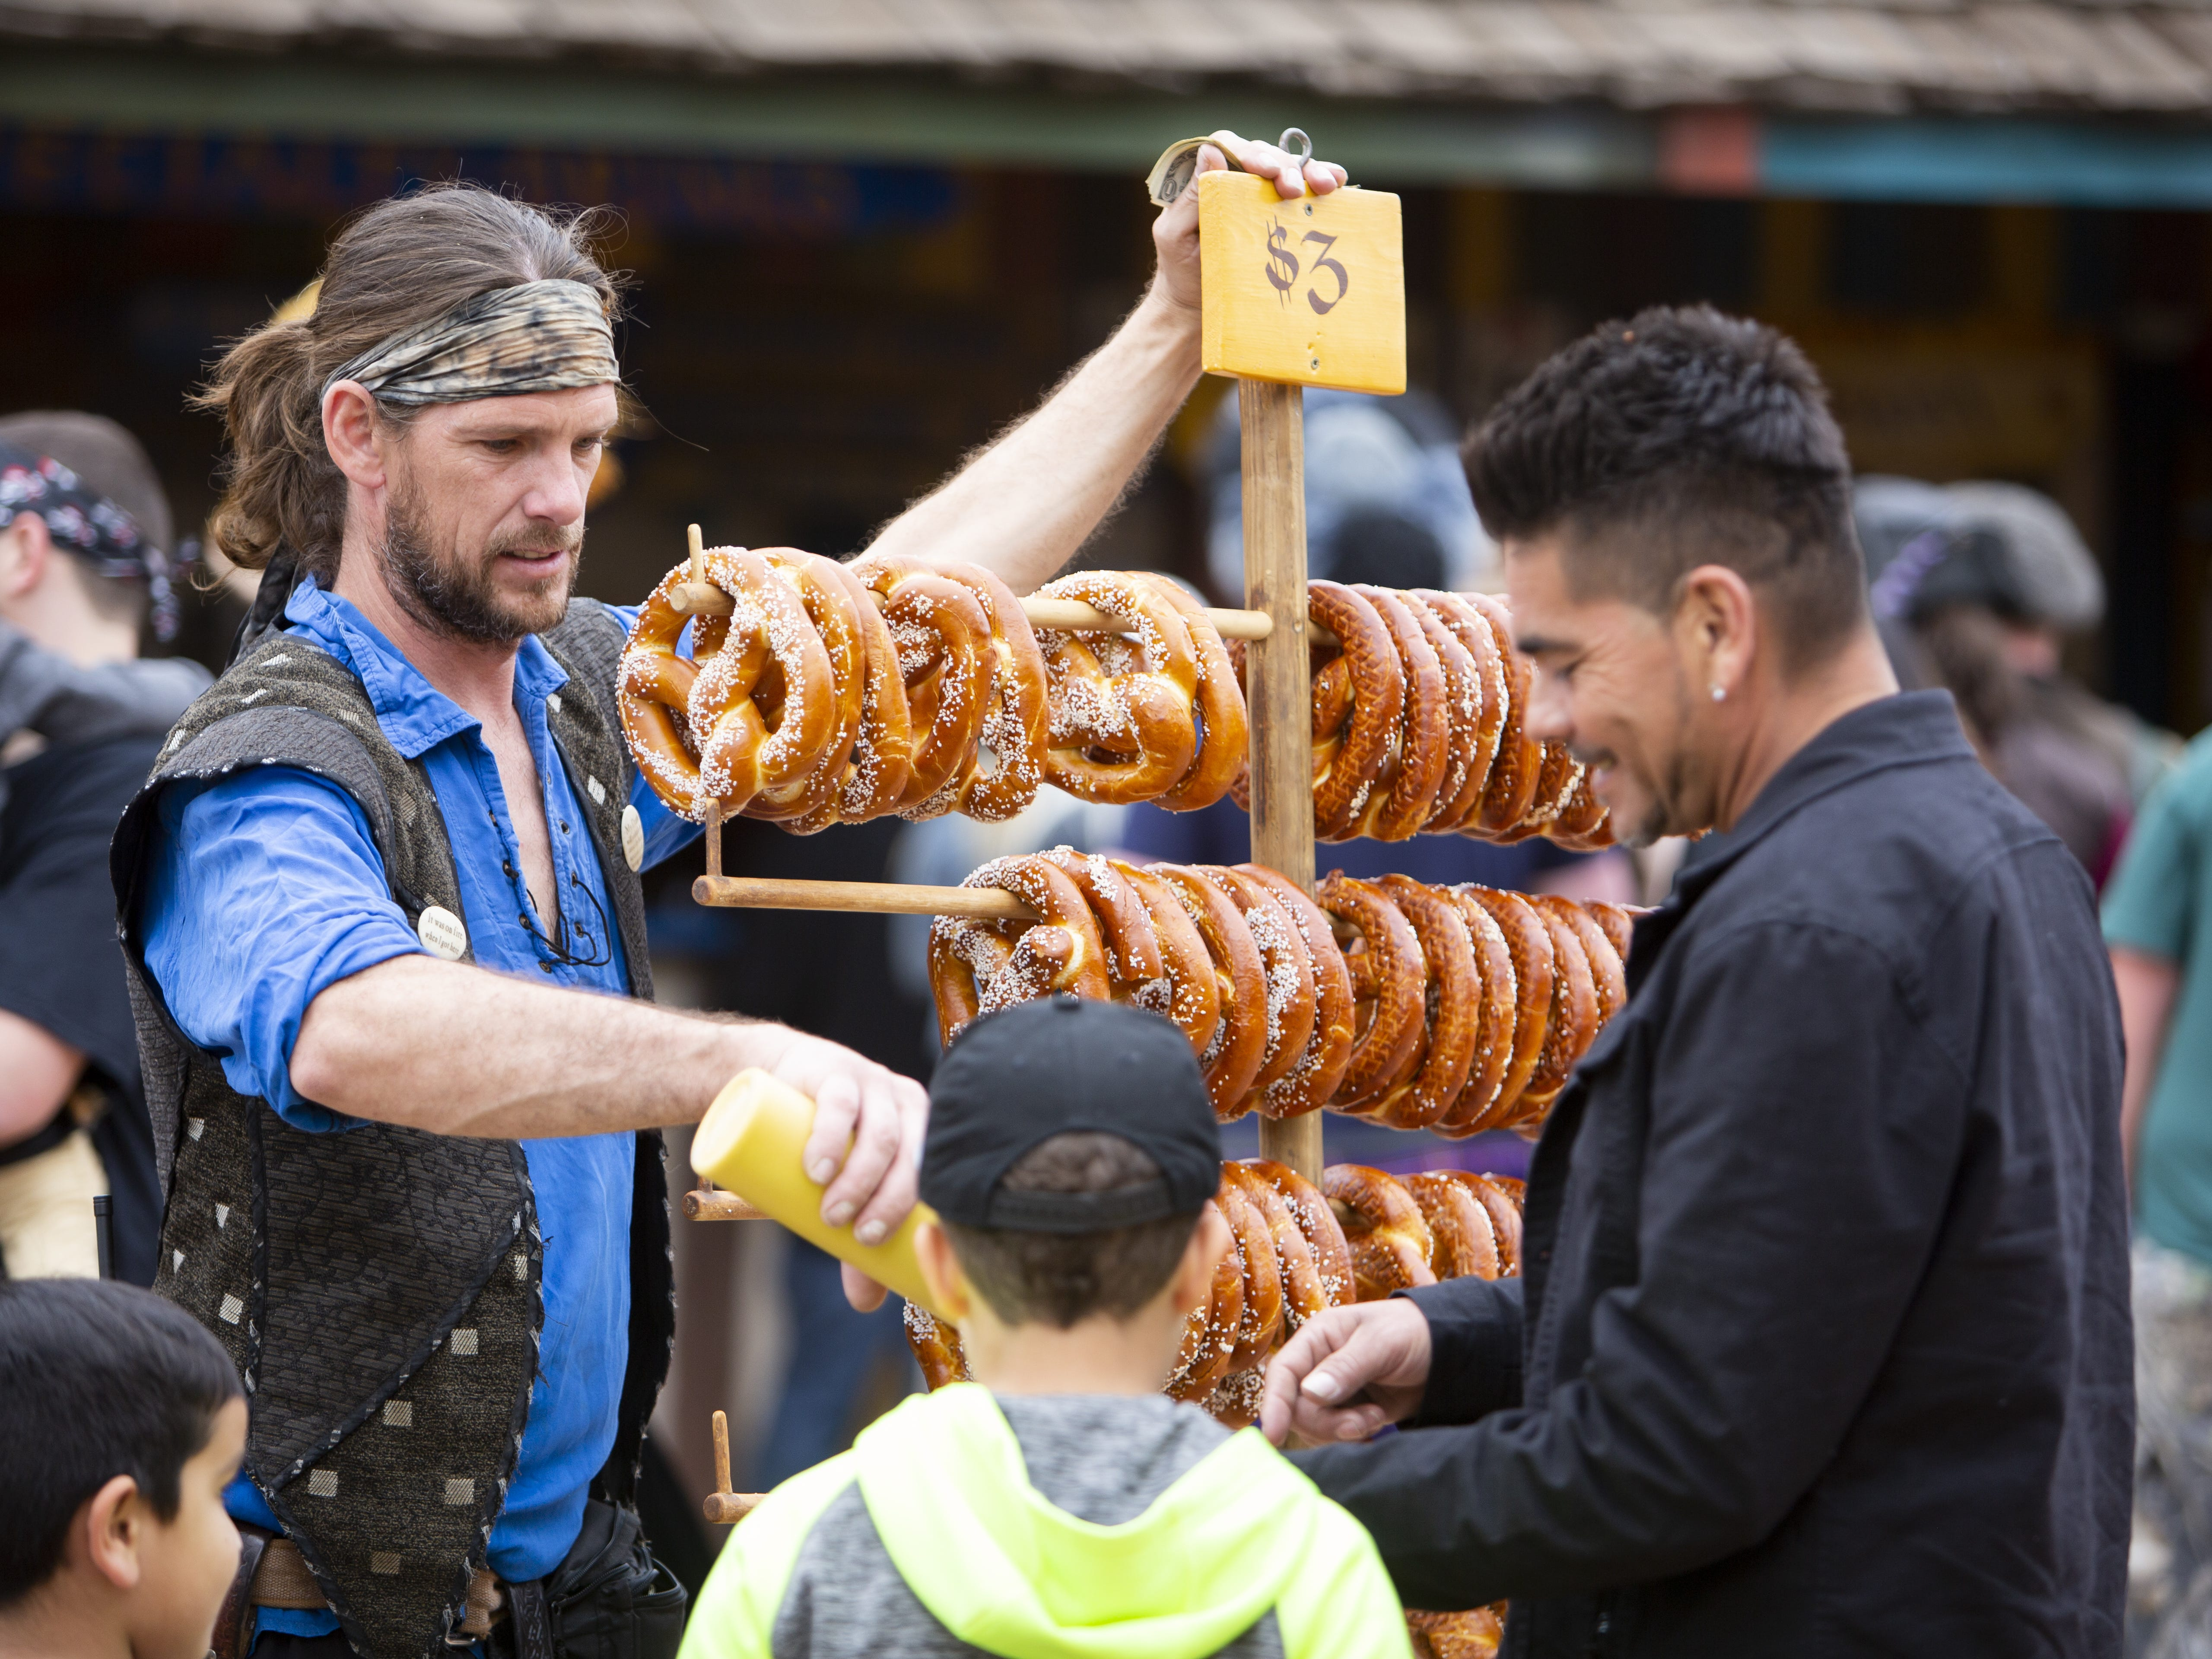 A man who identified himself as Black Ash the Pirate sells pretzels for $3 at the Arizona Renaissance Festival 2019 on Feb. 9, 2019 in Gold Canyon, Ariz.